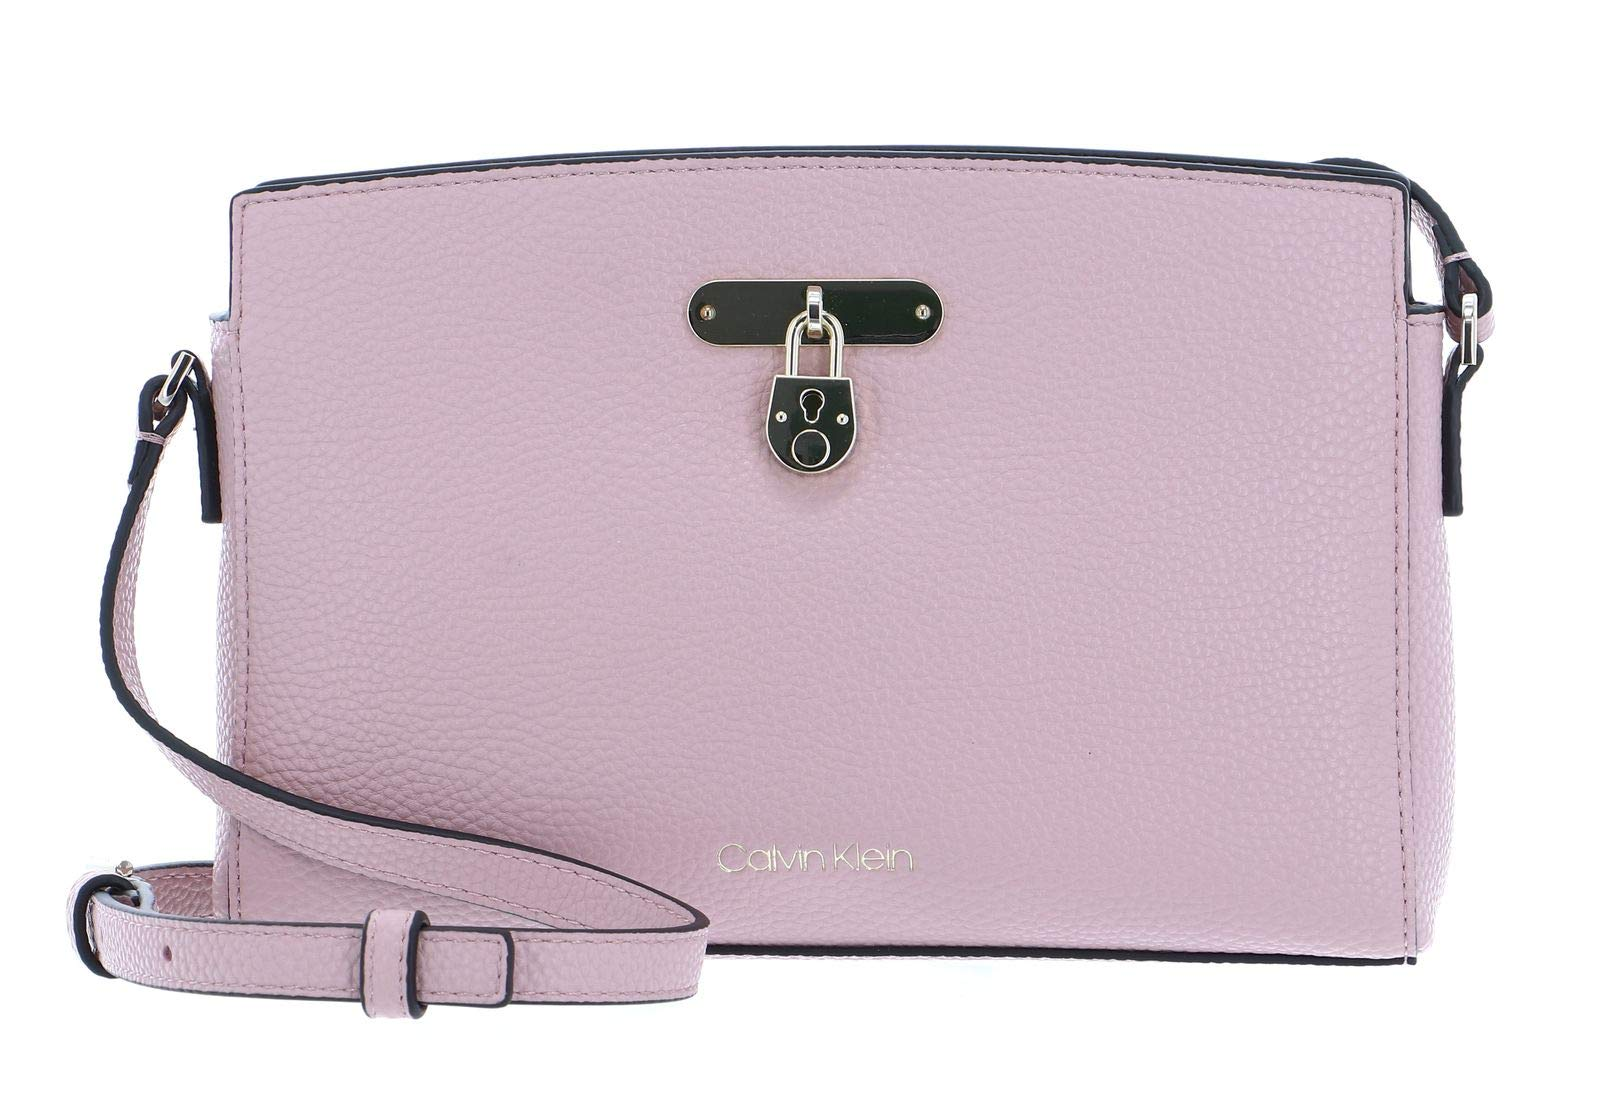 Calvin Klein DRESSED BUSINESS EW CROSSBODY